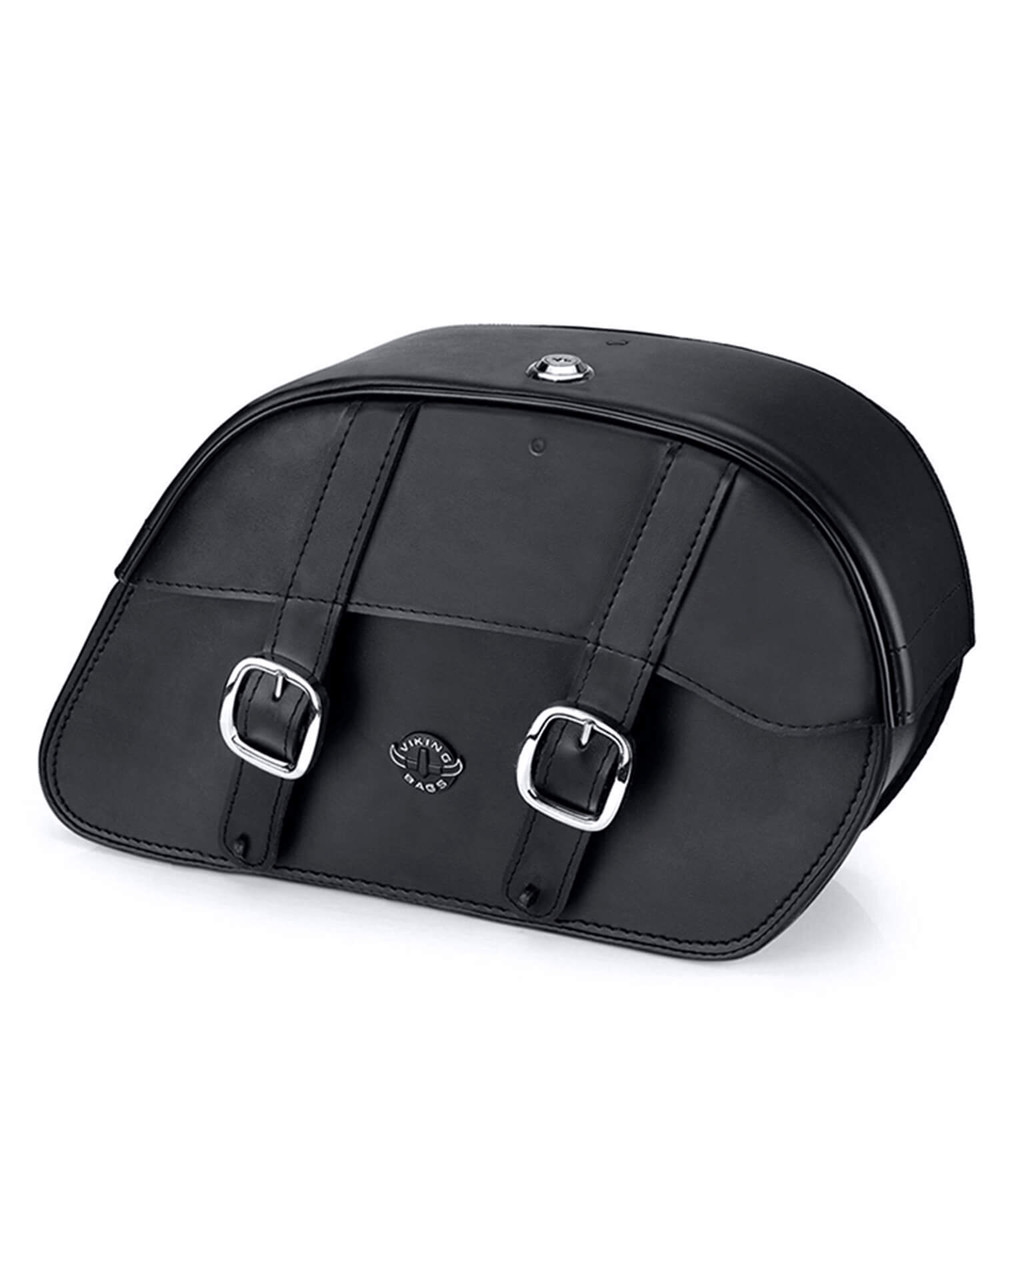 VikingBags Skarner Large Double Strap Leather Motorcycle Saddlebags For Harley Dyna Switchback Main View